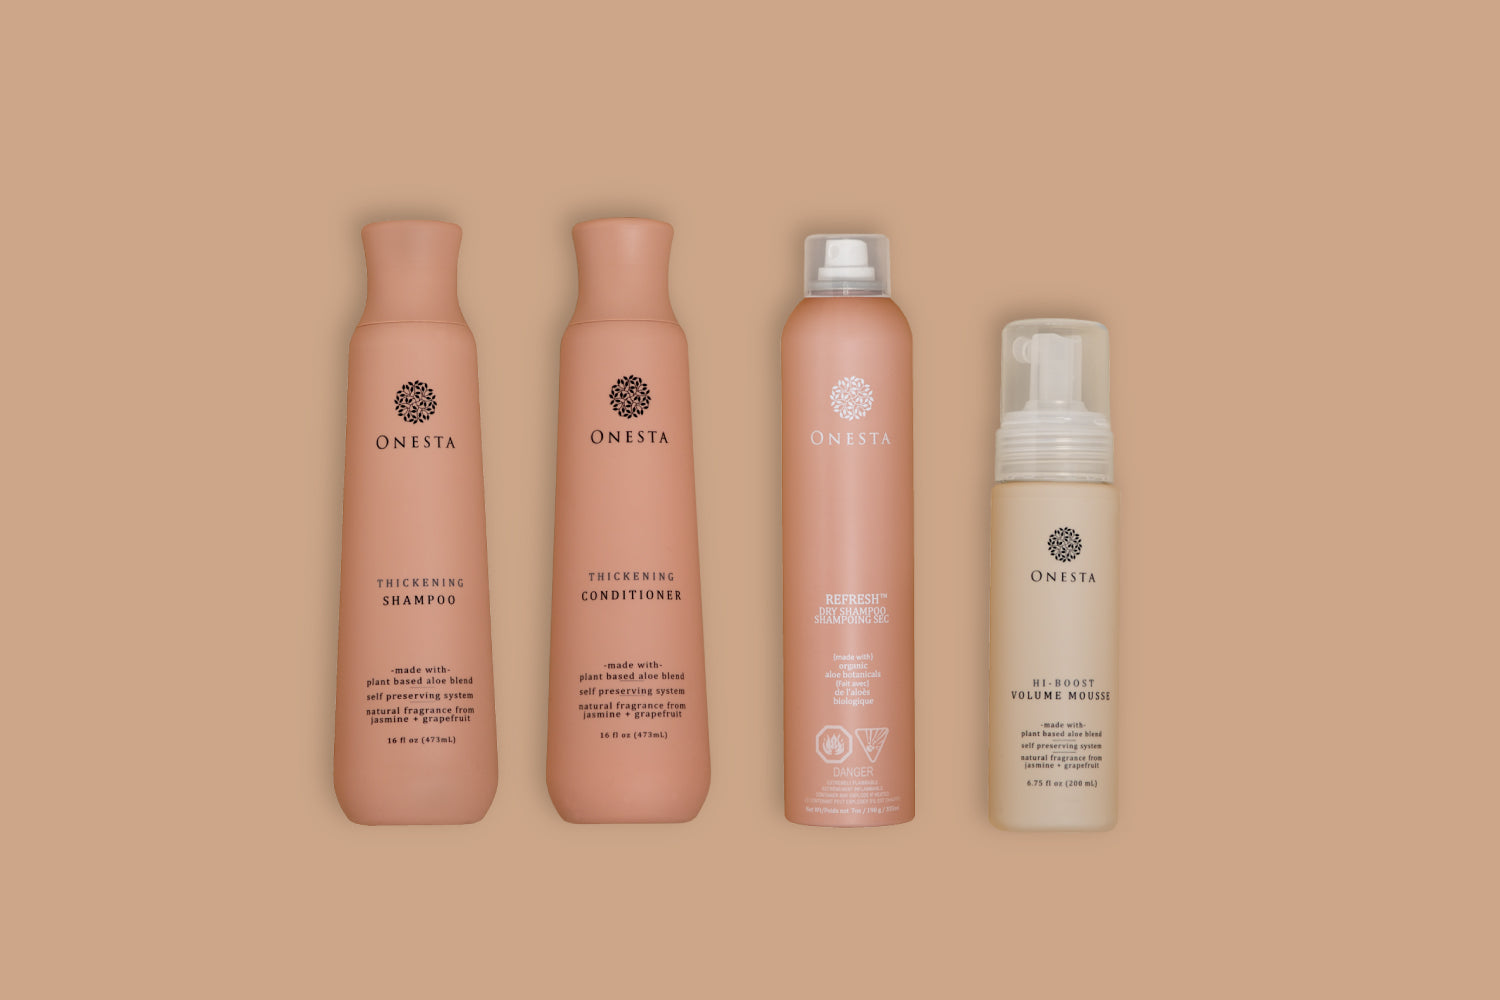 The Volumizing Collection